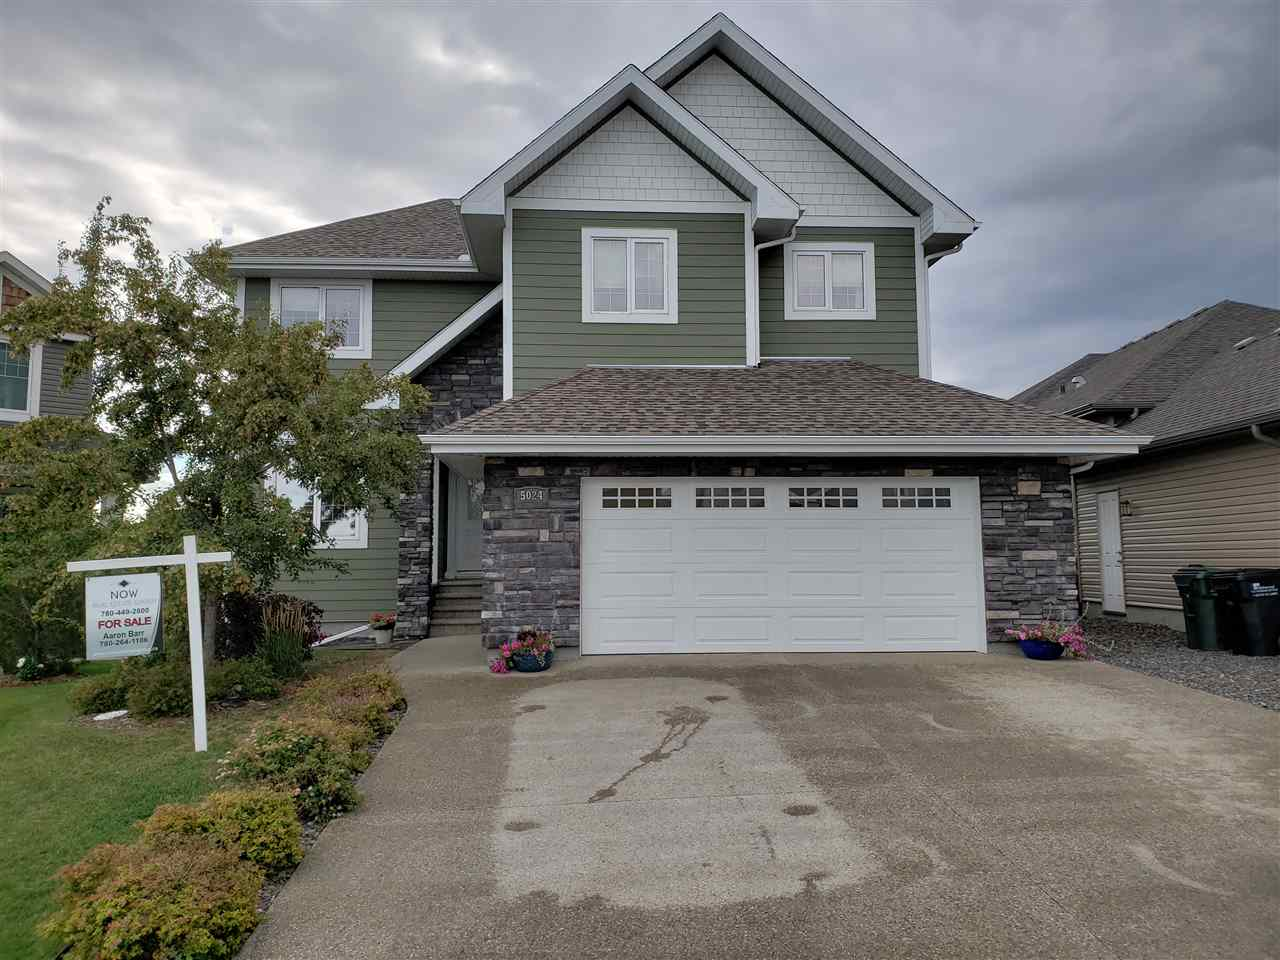 Main Photo: 5024 CEYLON Close: Sherwood Park House for sale : MLS®# E4126910